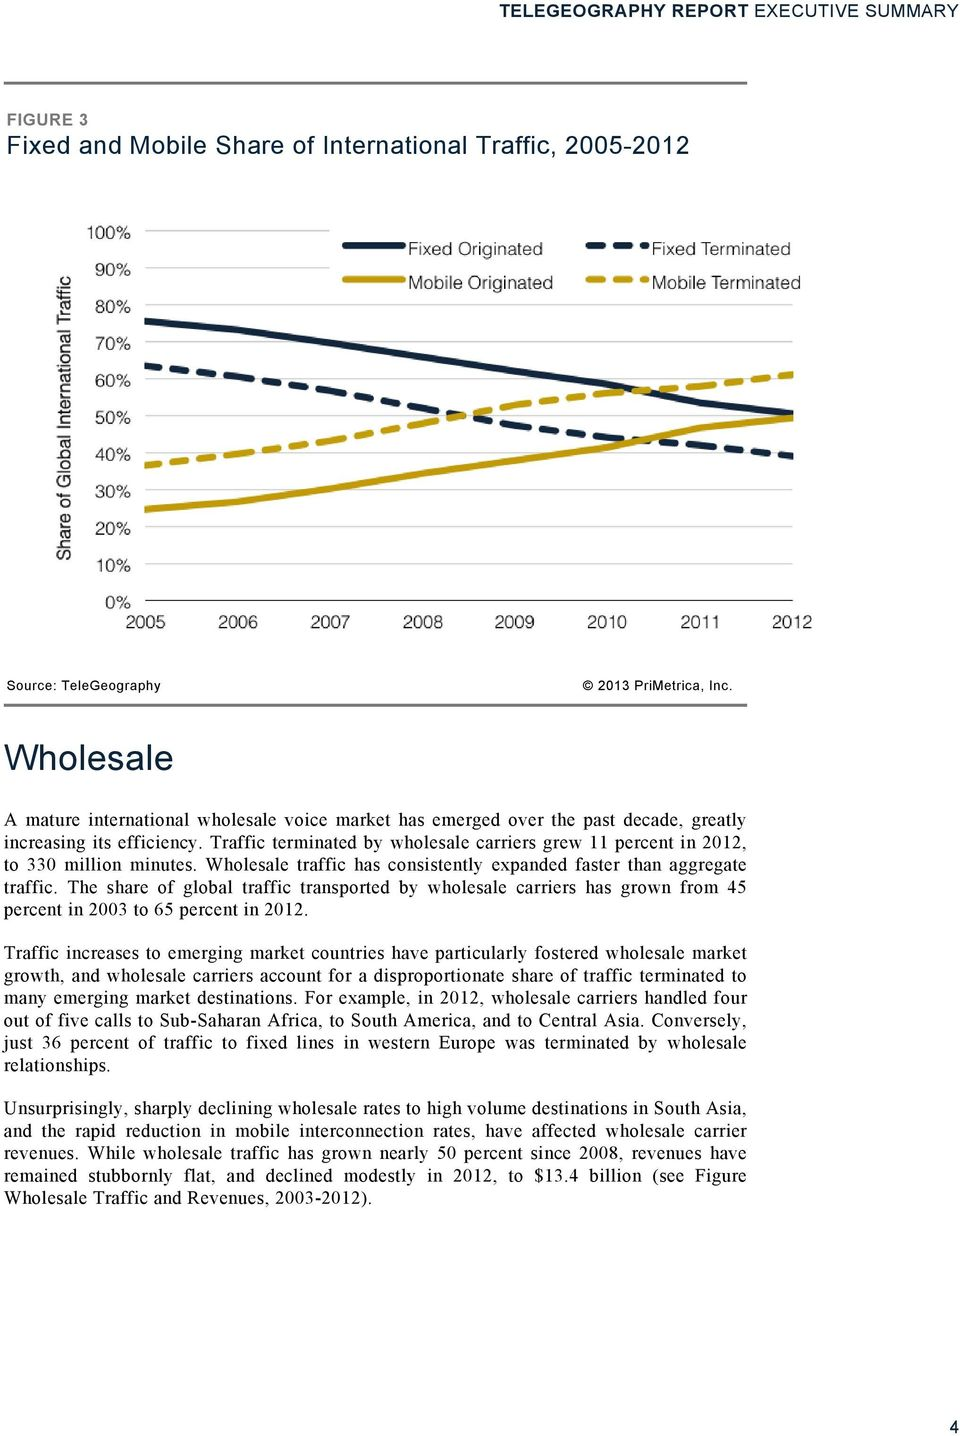 The share of global traffic transported by wholesale carriers has grown from 45 percent in 2003 to 65 percent in 2012.